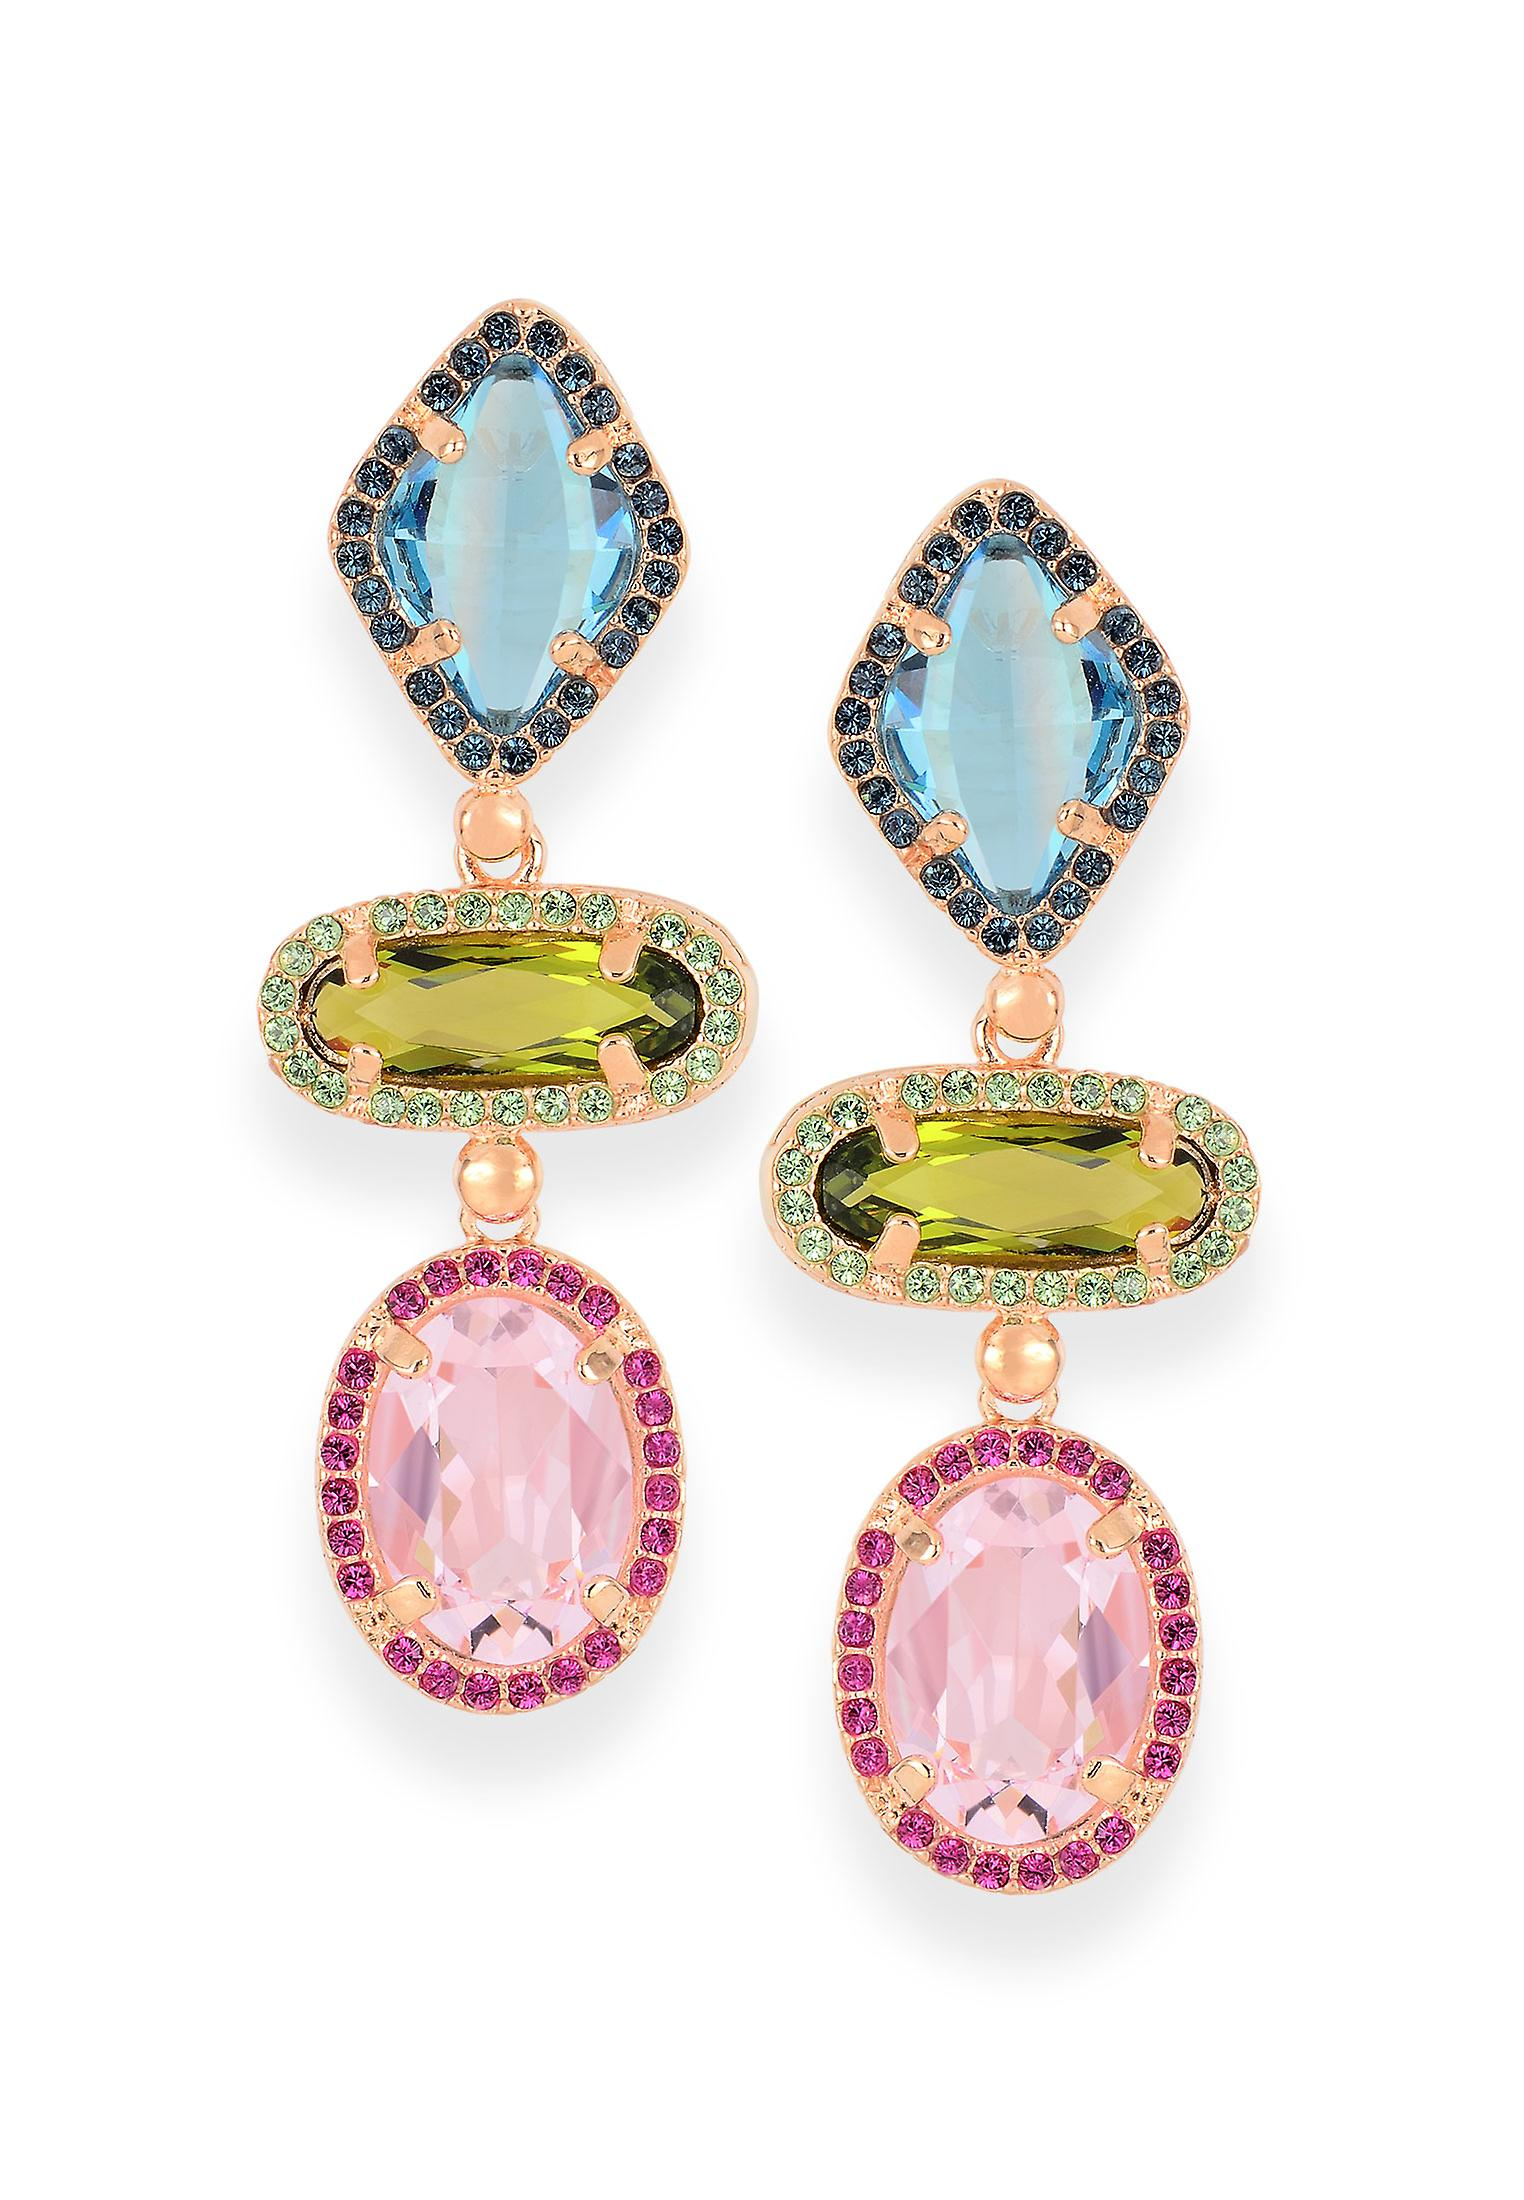 Multicolor earrings with crystals from Swarovski 4662